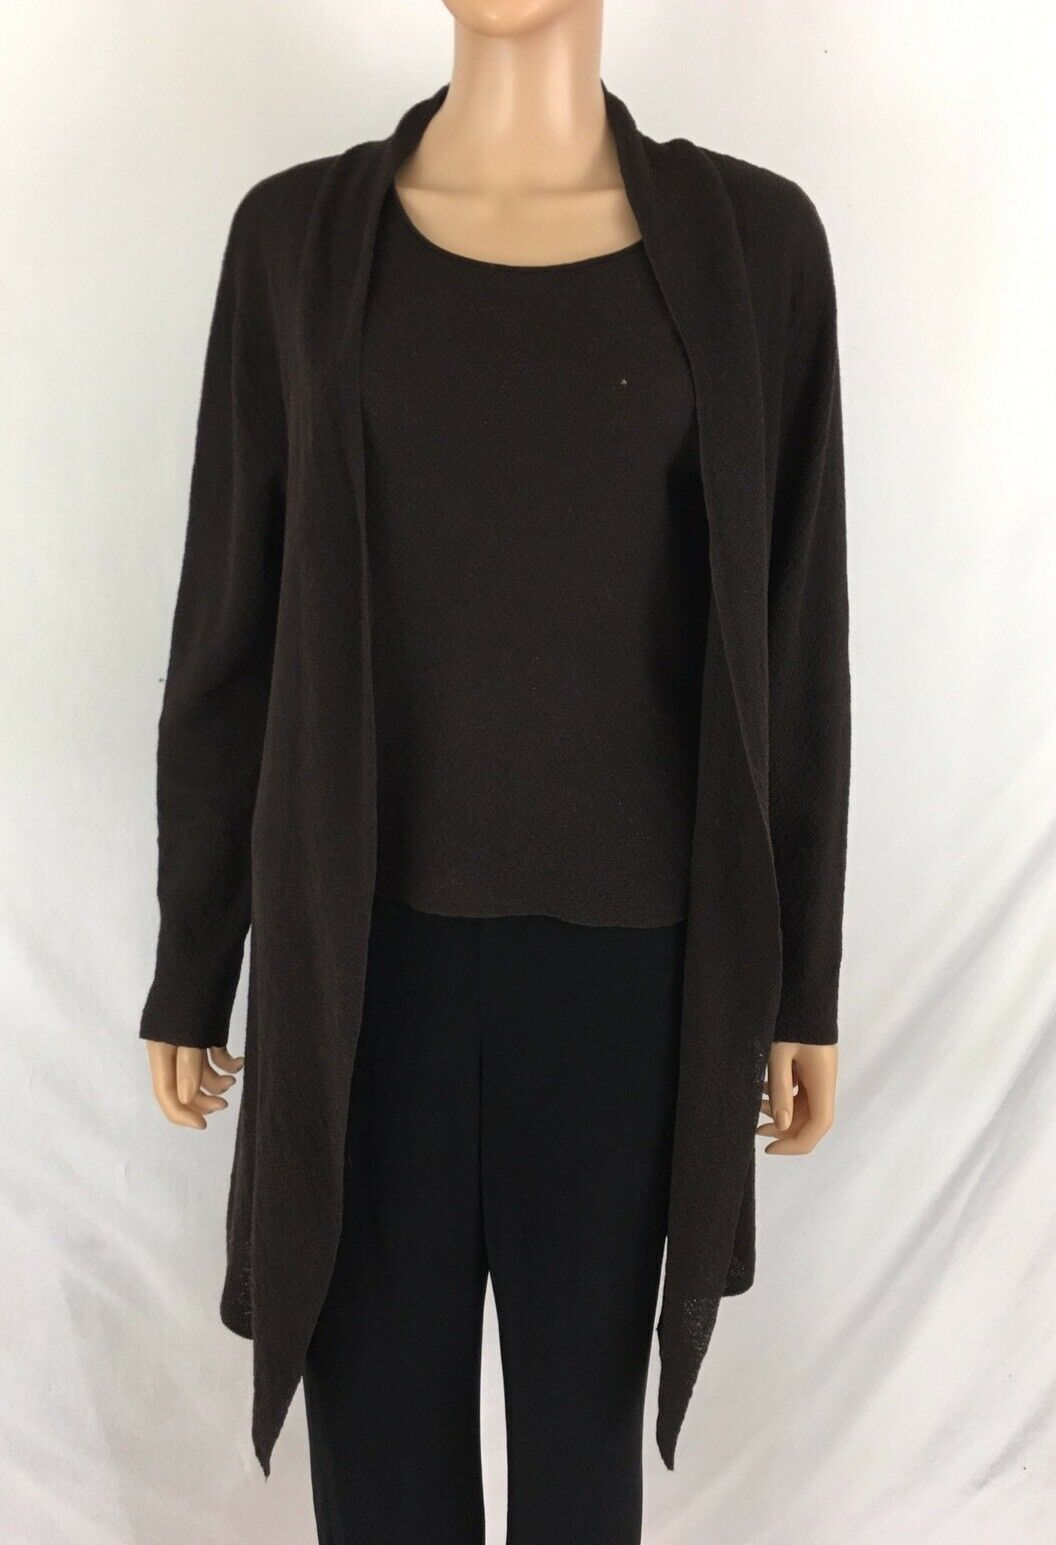 Sweaters , Womens Clothing , Clothing, Shoes & Accessories